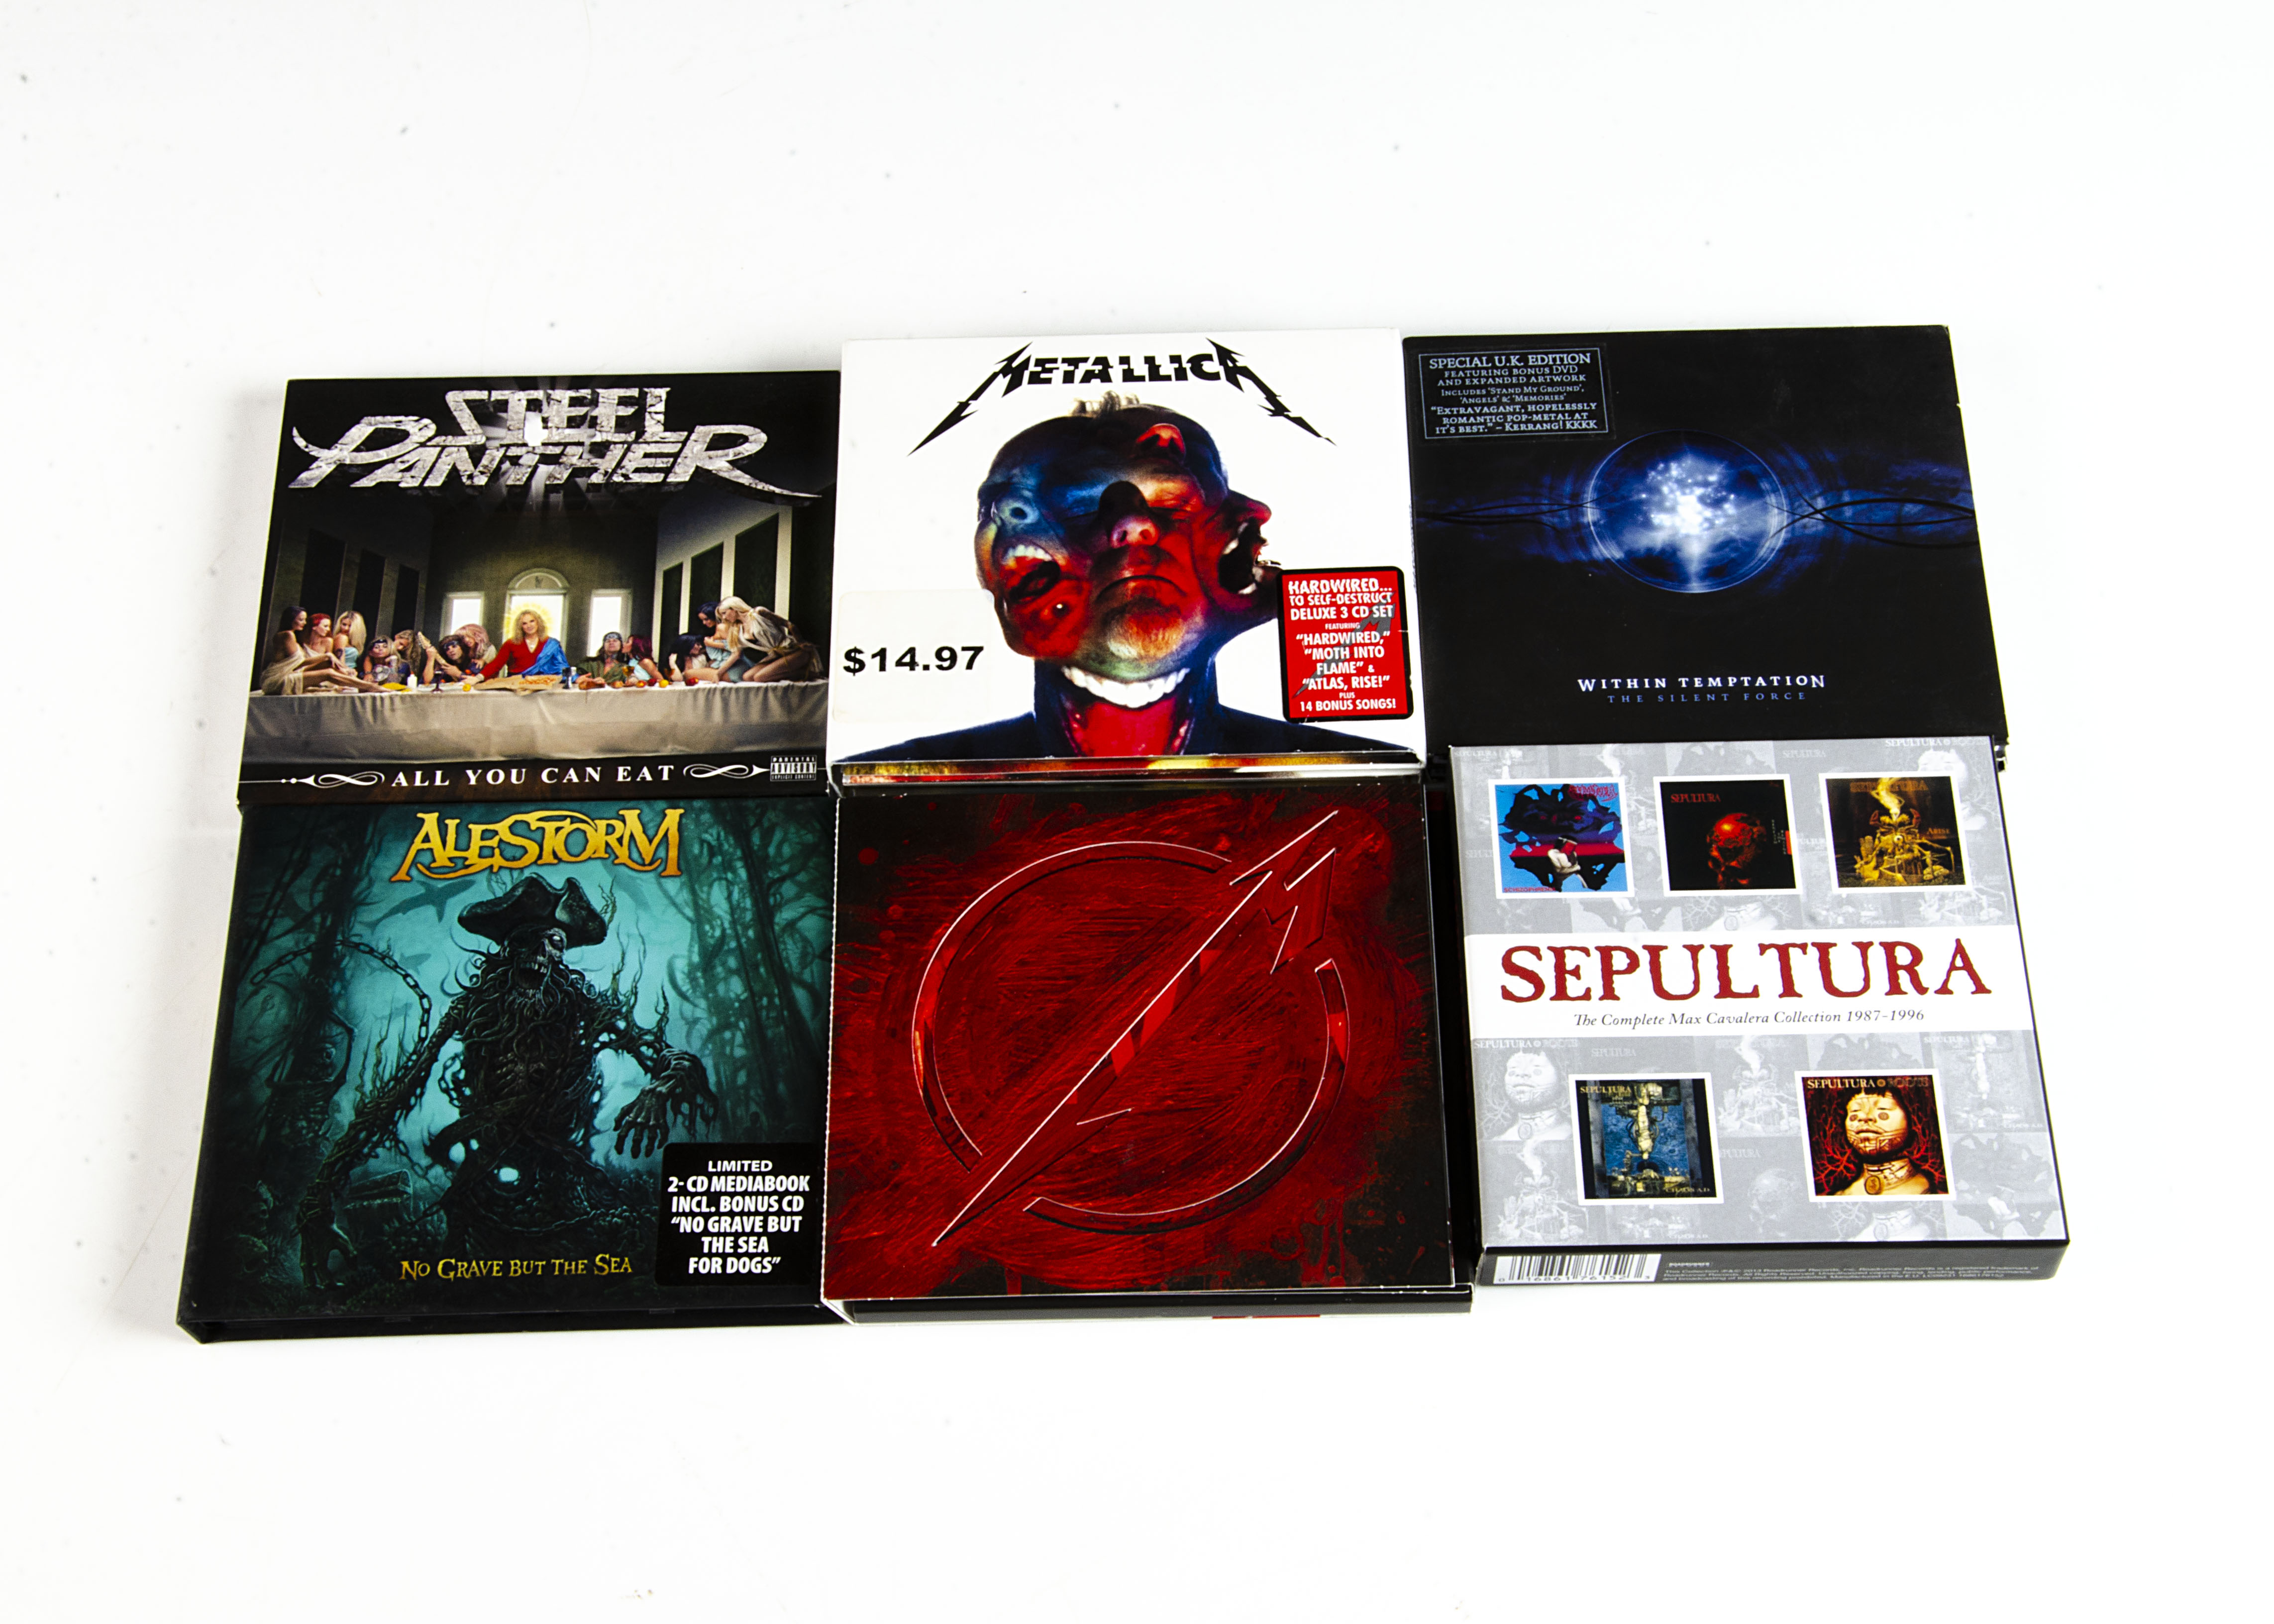 Metal CDs and Box Sets, approximately sixty CDs of mainly Thrash, Death and Heavy Metal including